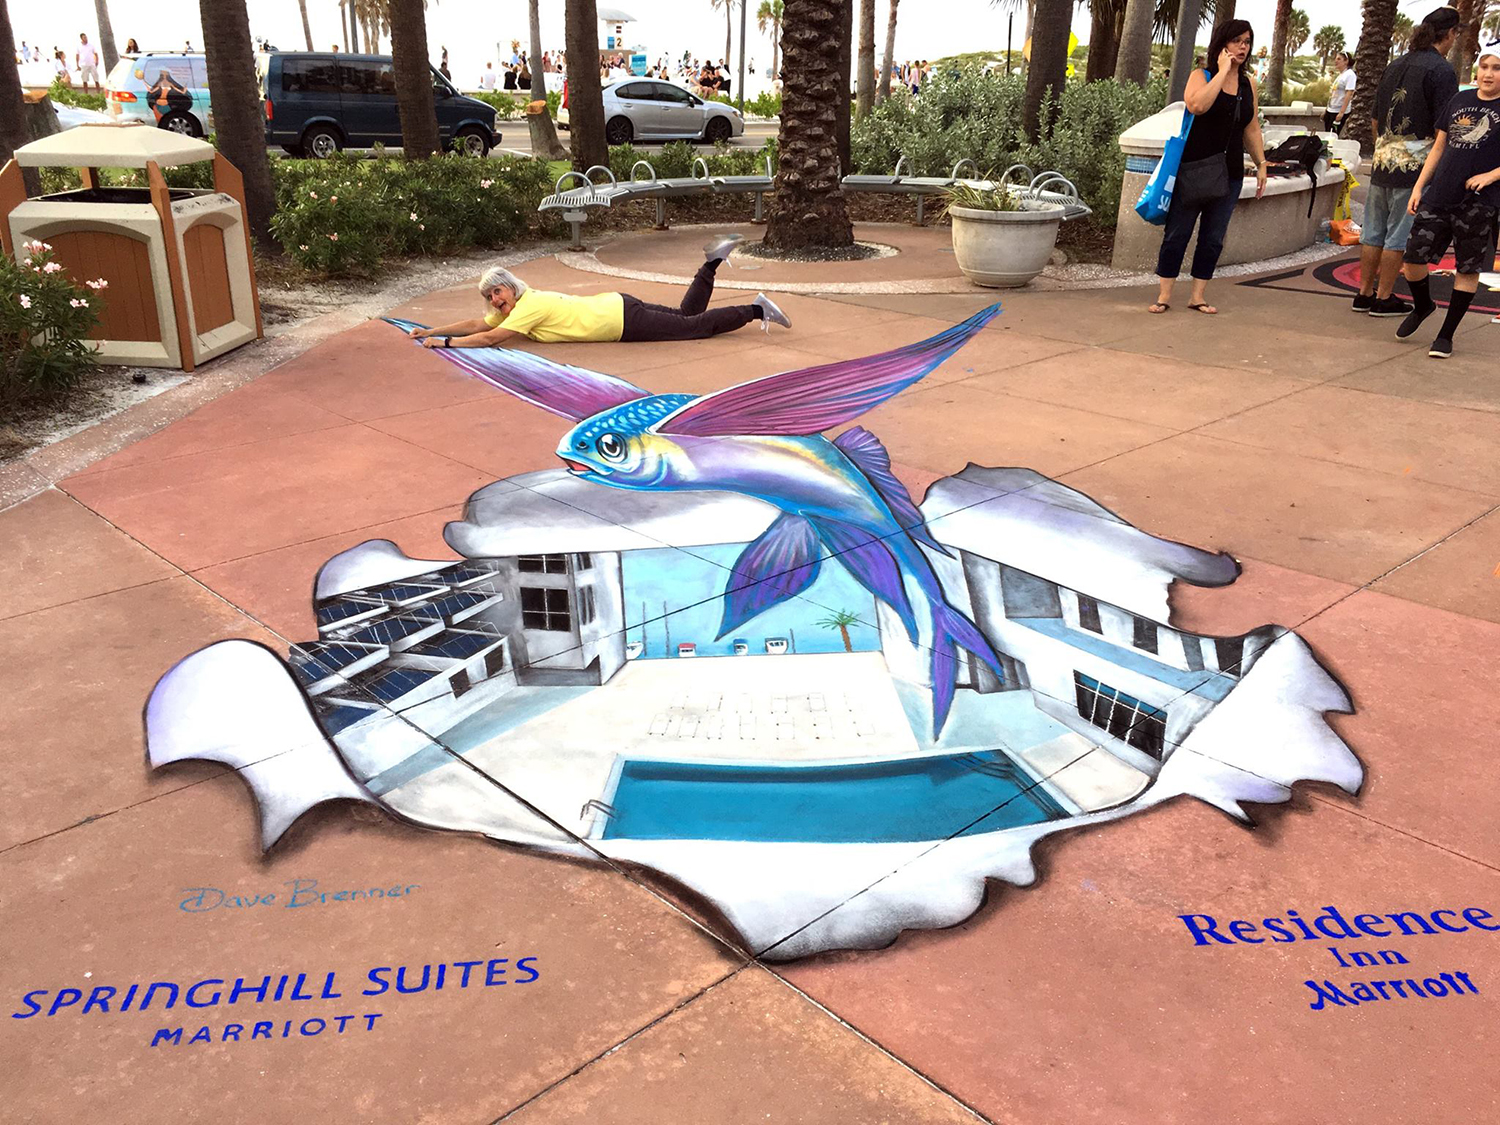 2017 Clearwater Beach Chalk Art Festival, Clearwater, FL